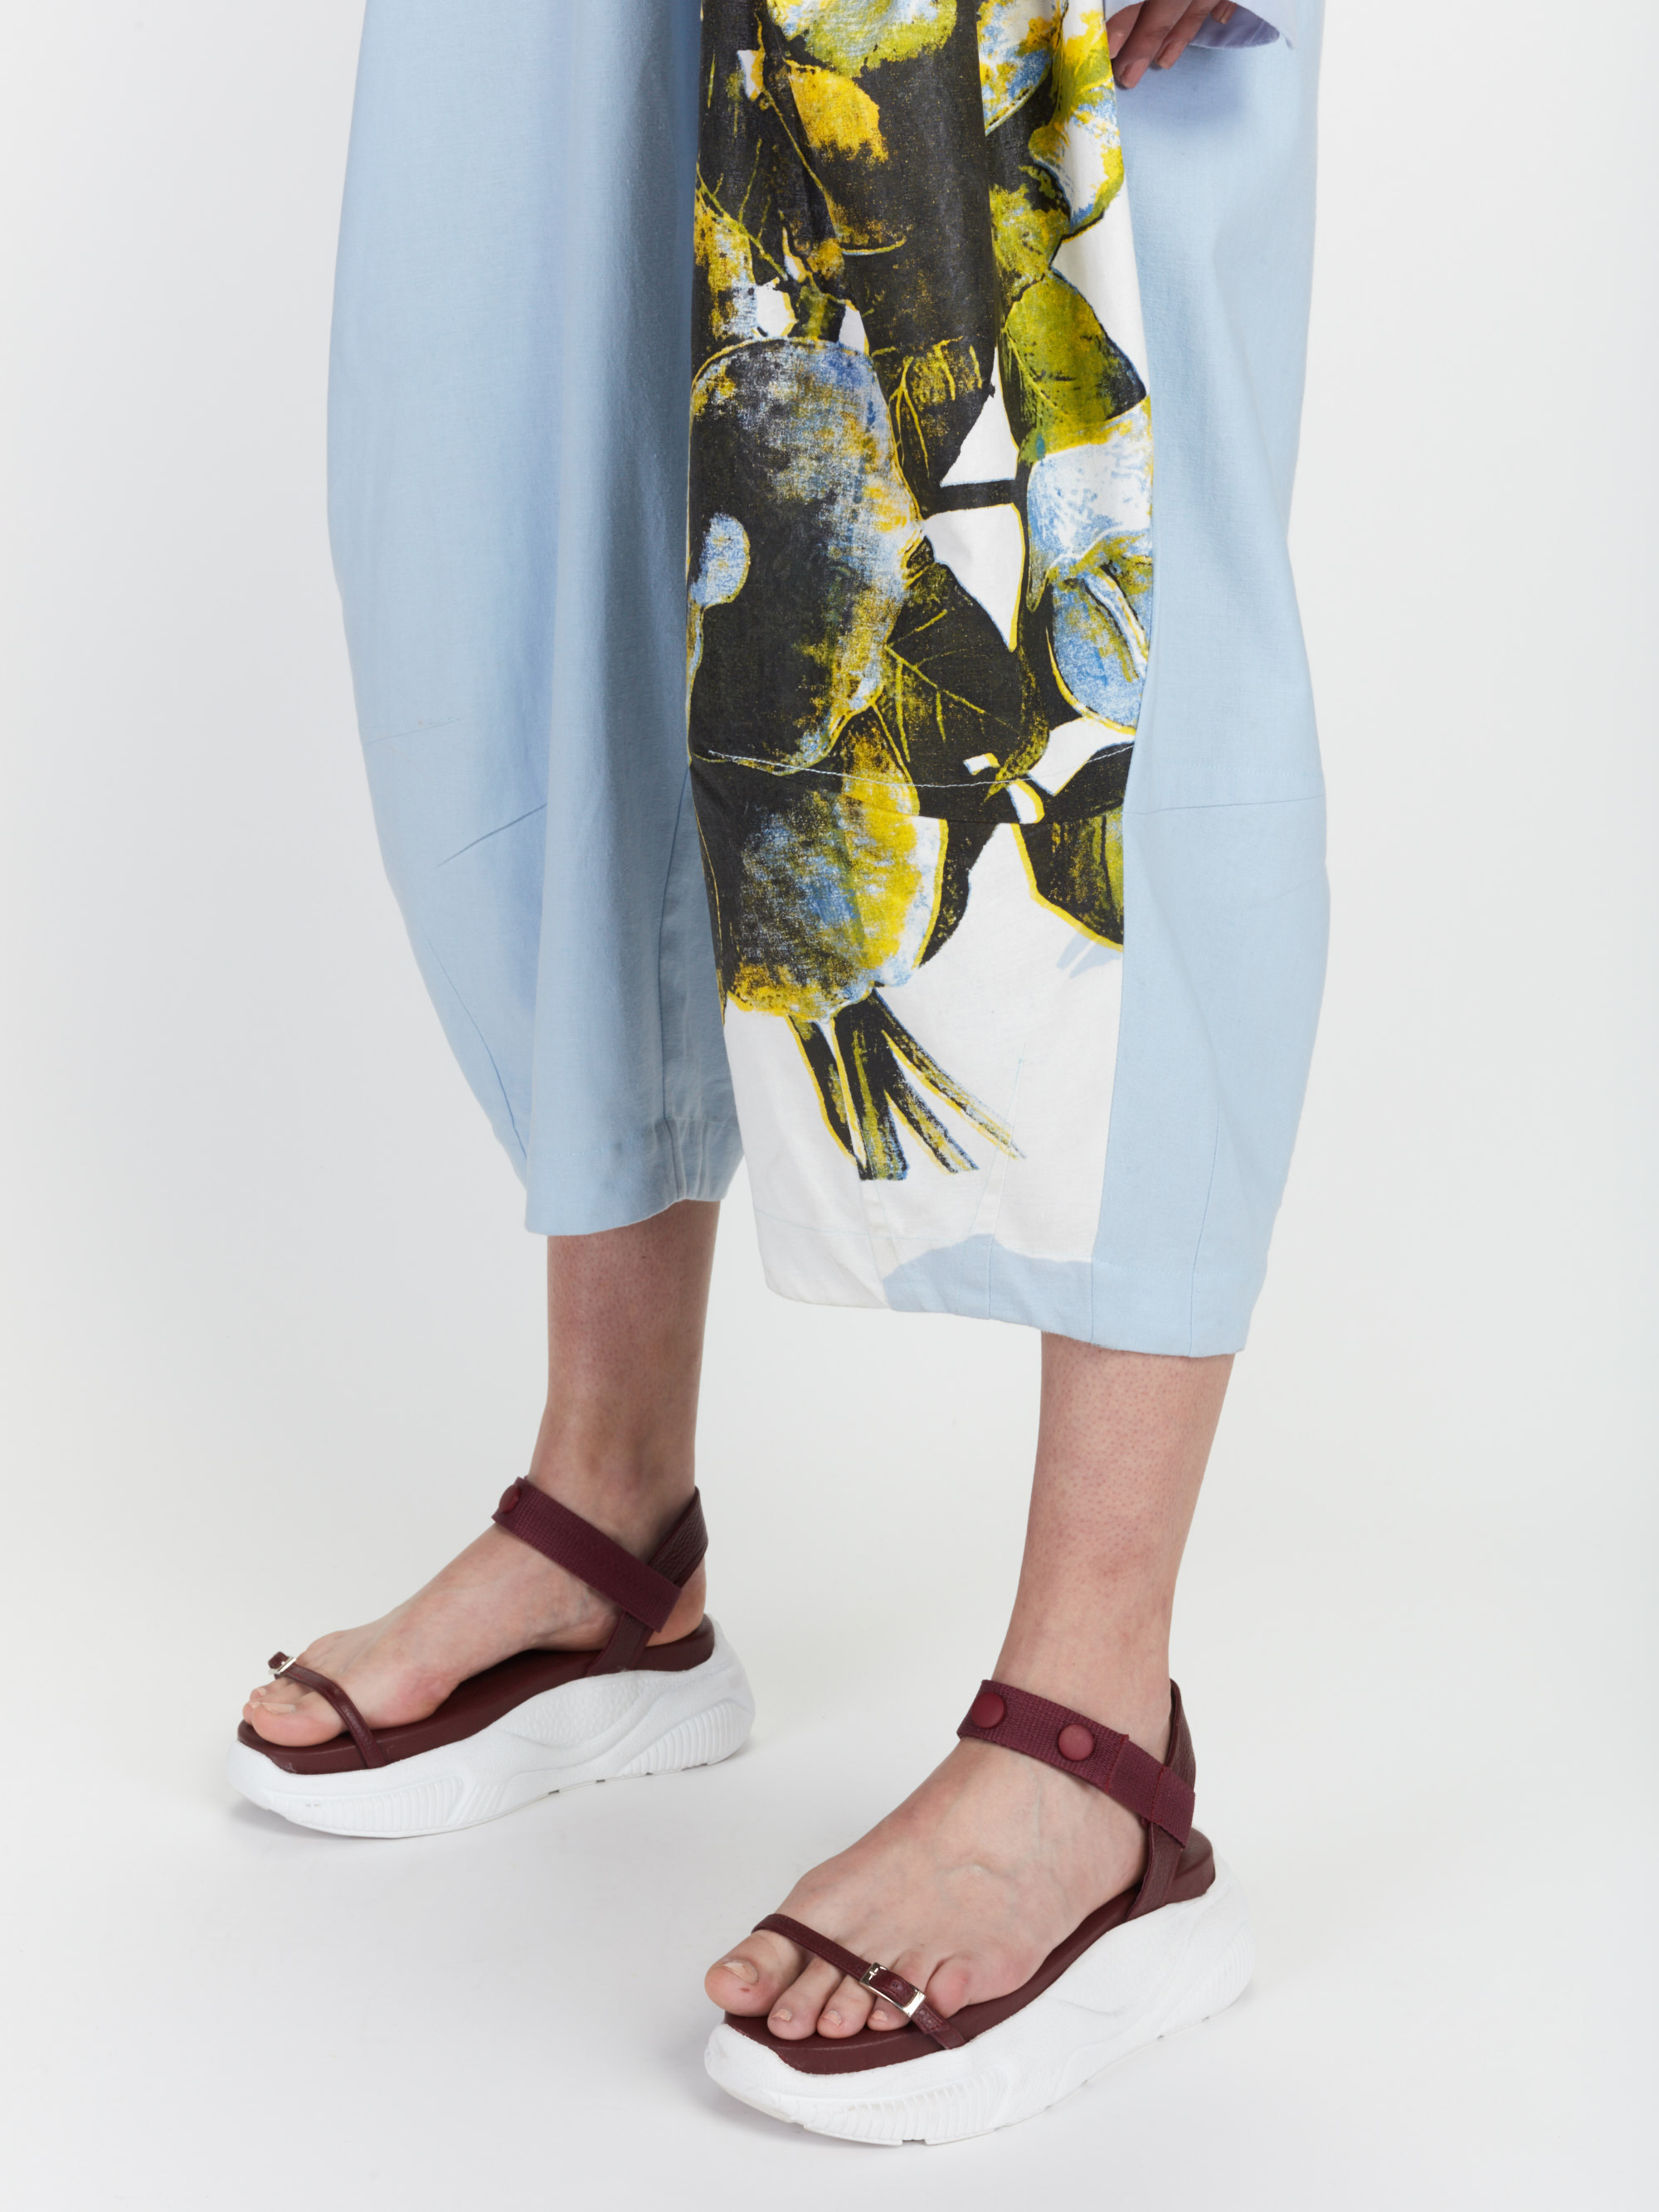 jt_zappa-printed-pant_29-26-2018__picture-1272